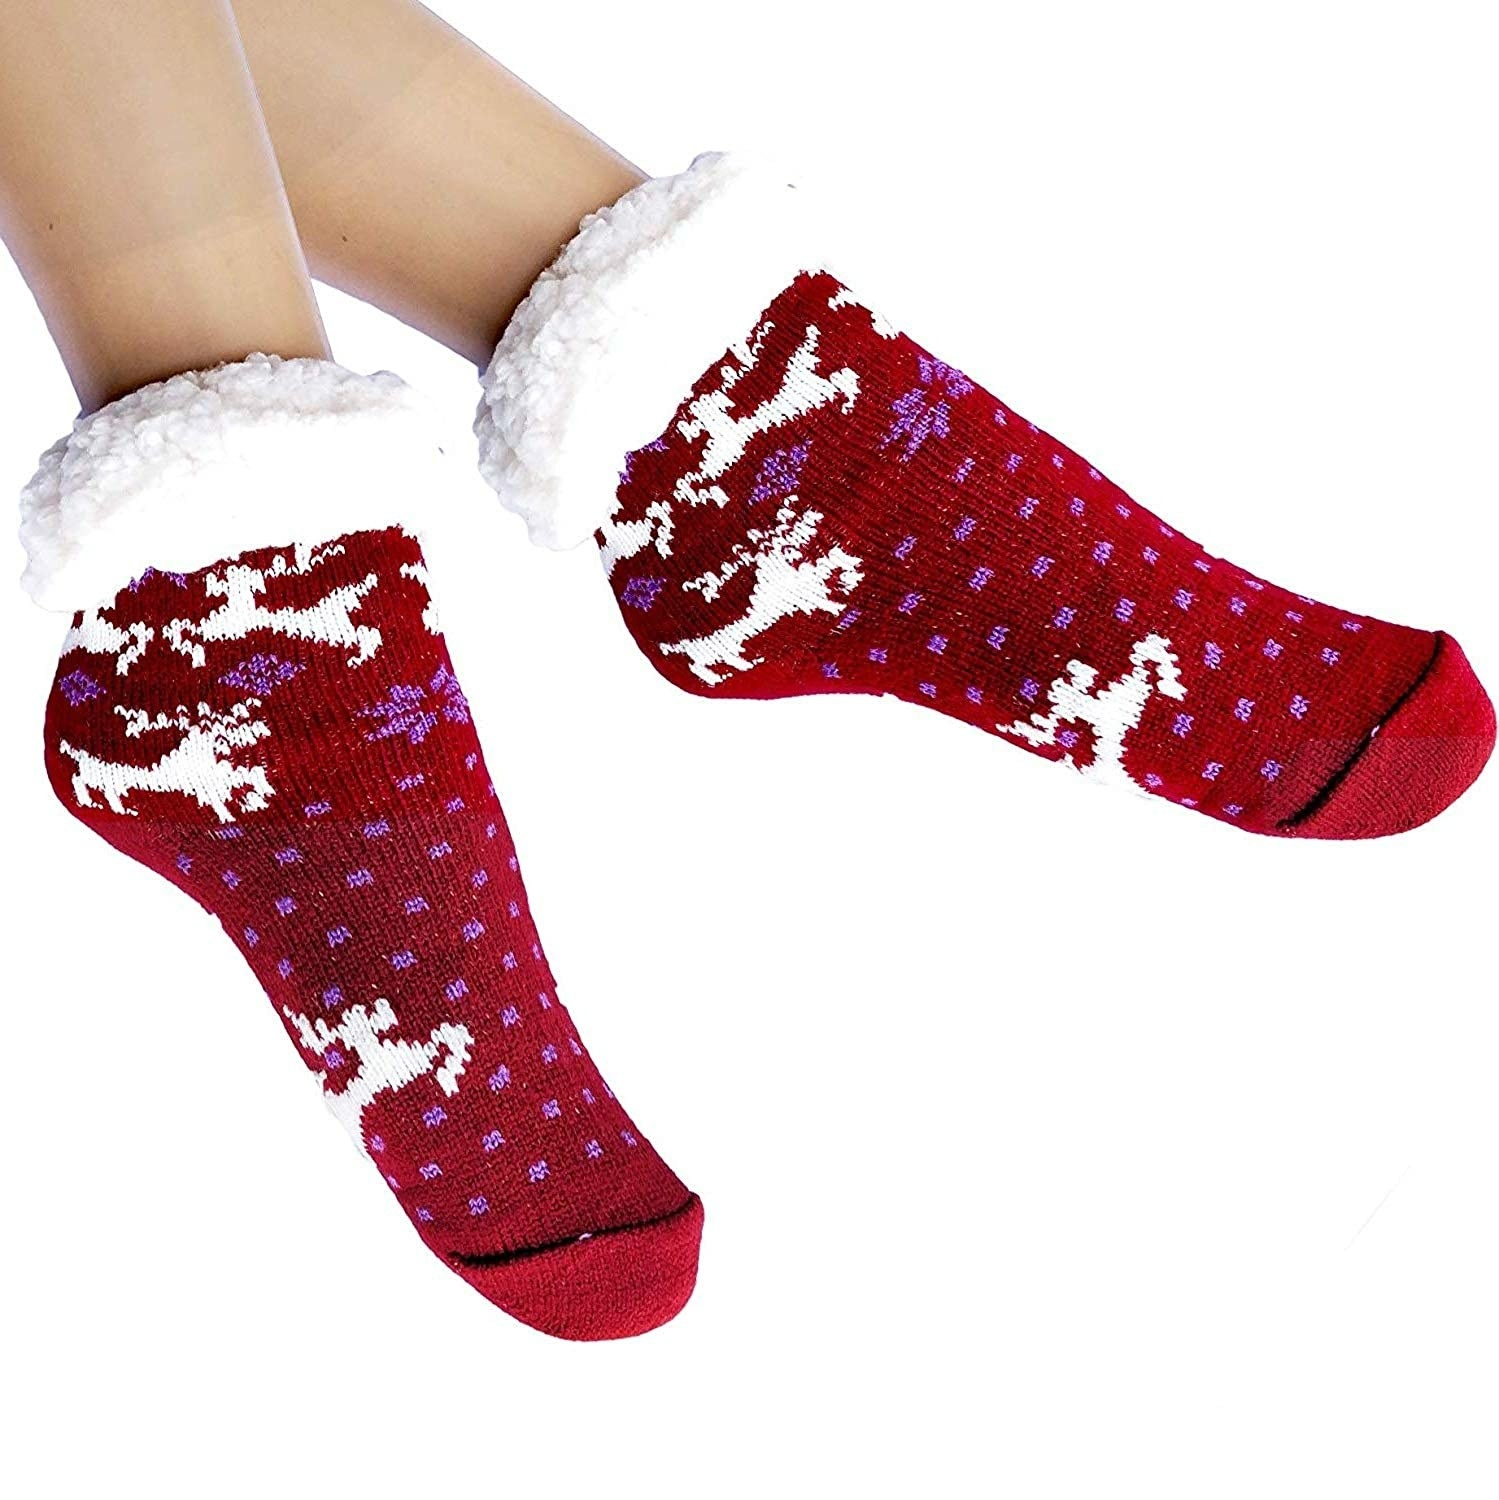 Red and white fuzzy slipper socks.